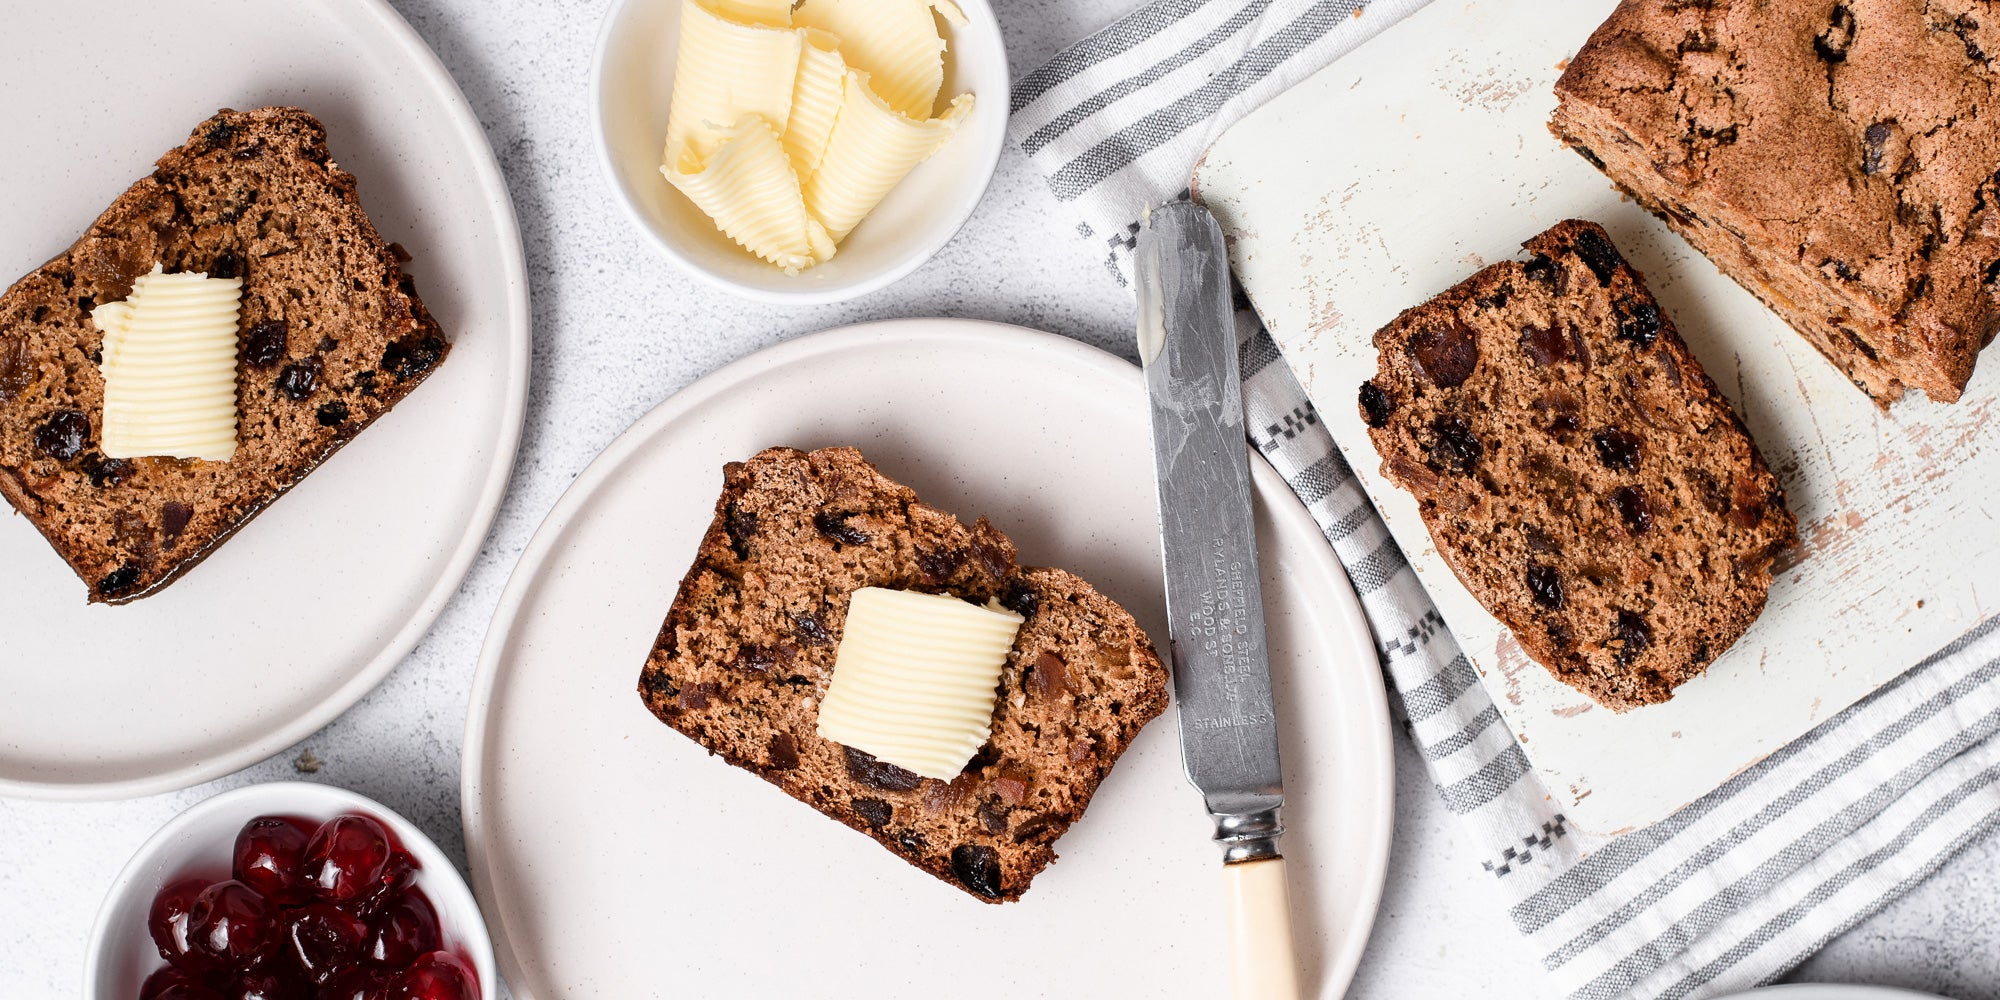 Irish Tea Brack sliced on plates with butter and preserves